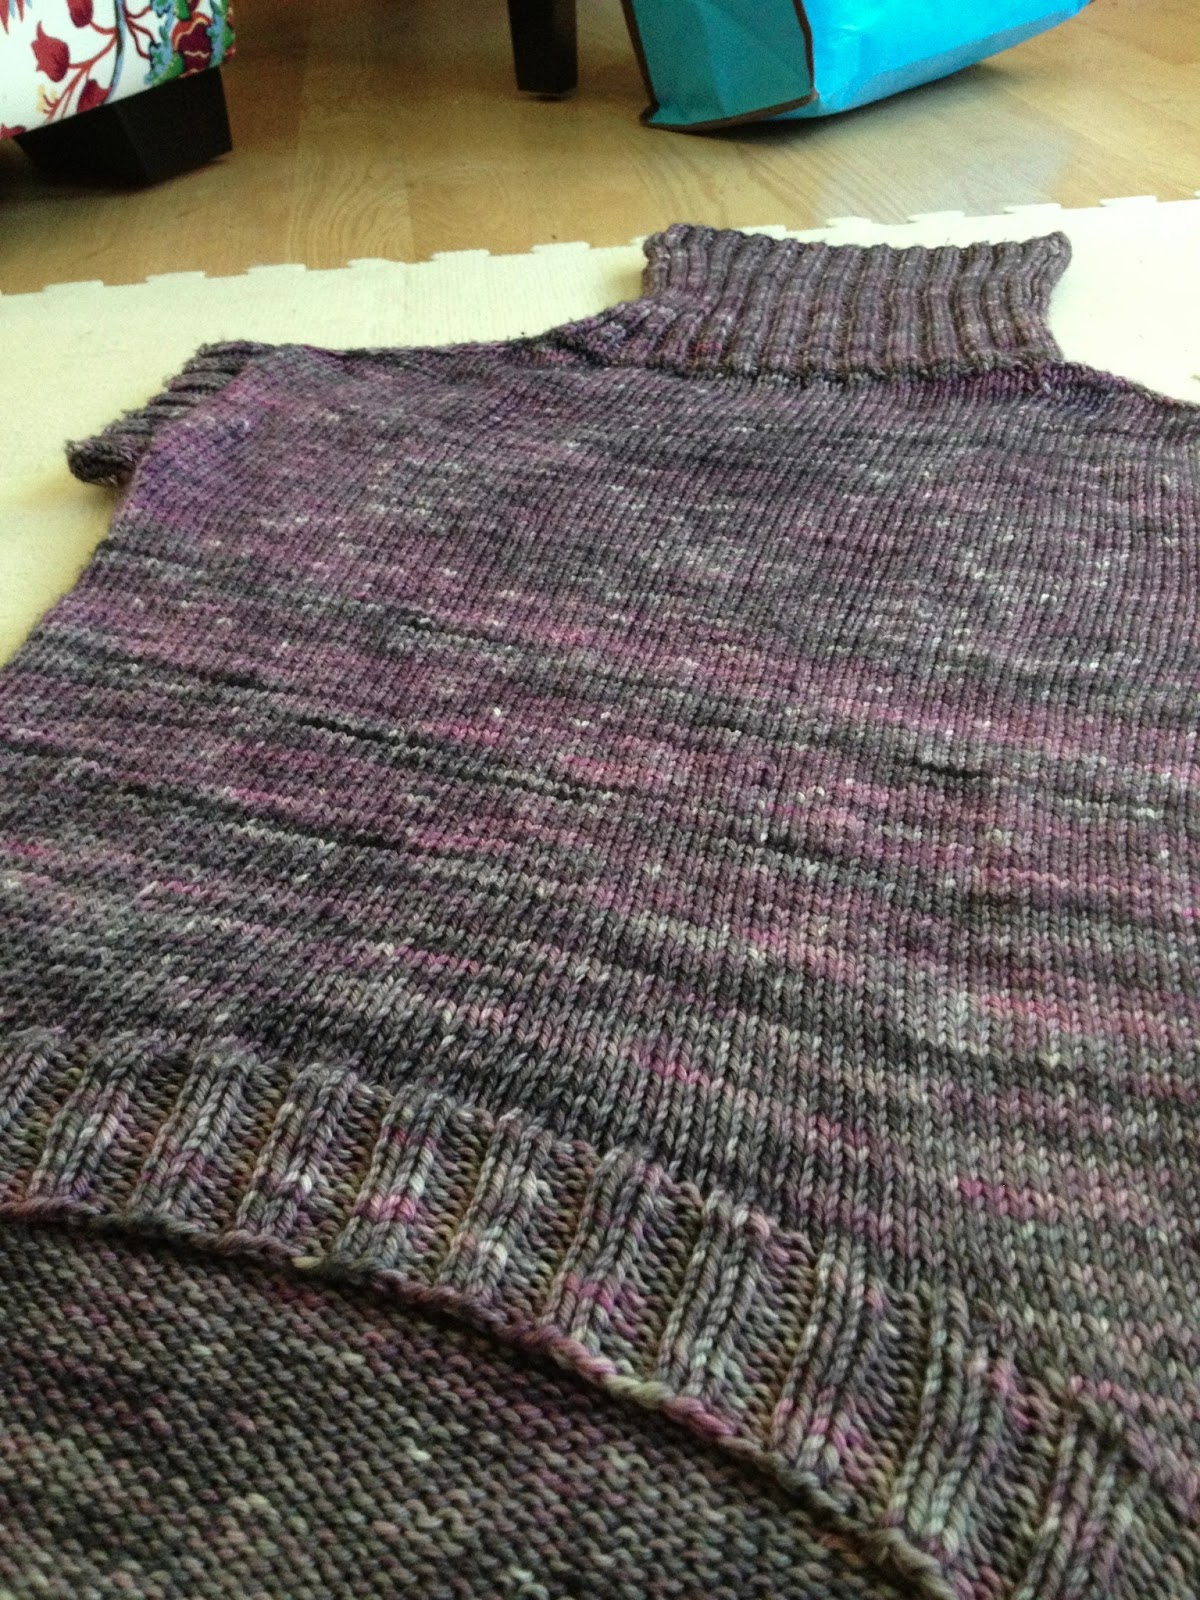 Knitting Pattern Essentials By Sally Melville : Susan B. Anderson: Jun 18, 2013